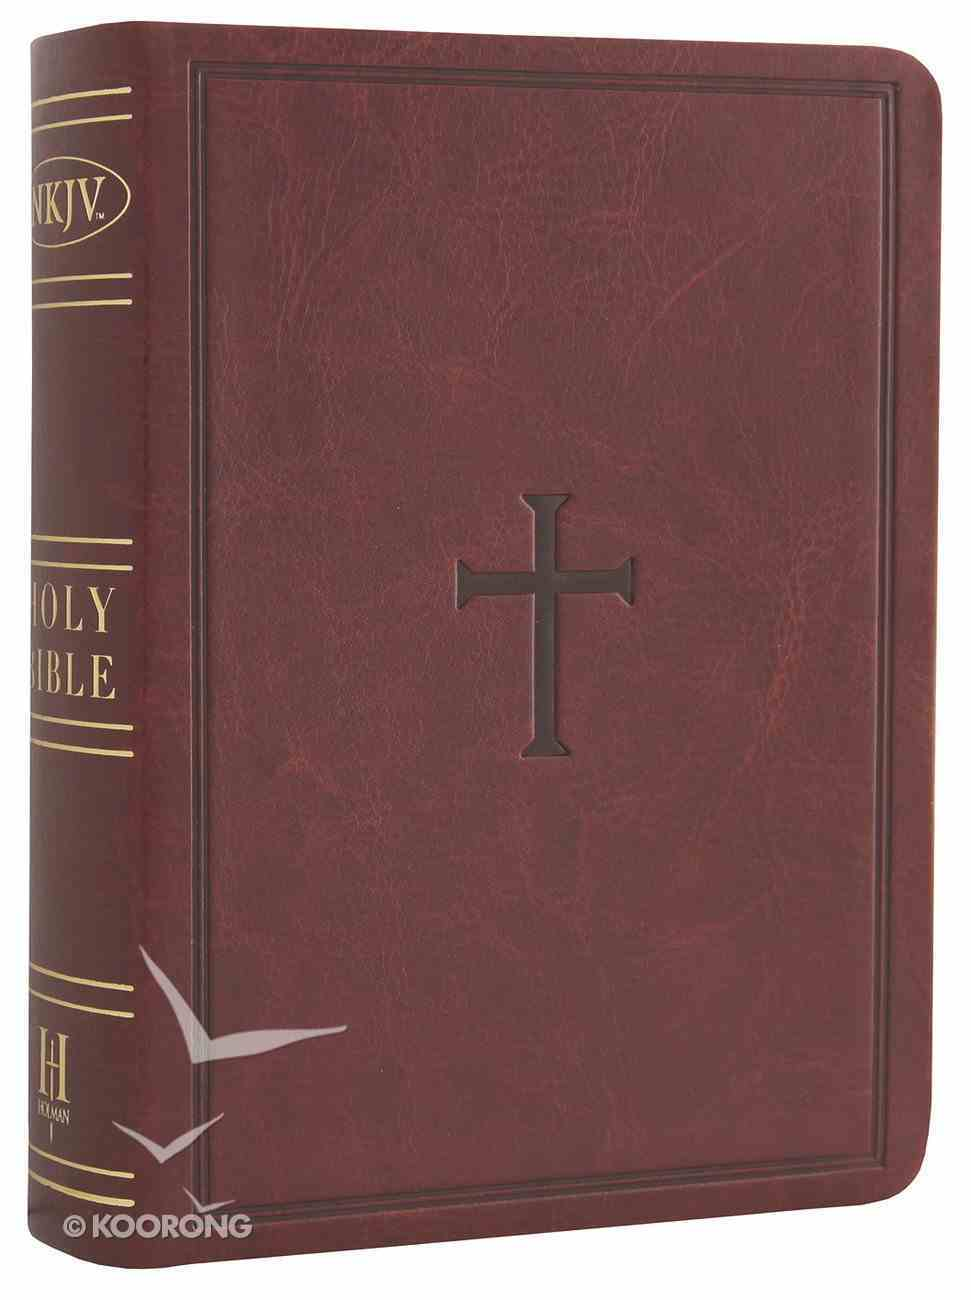 NKJV Large Print Compact Reference Bible Brown (Red Letter Edition) Premium Imitation Leather